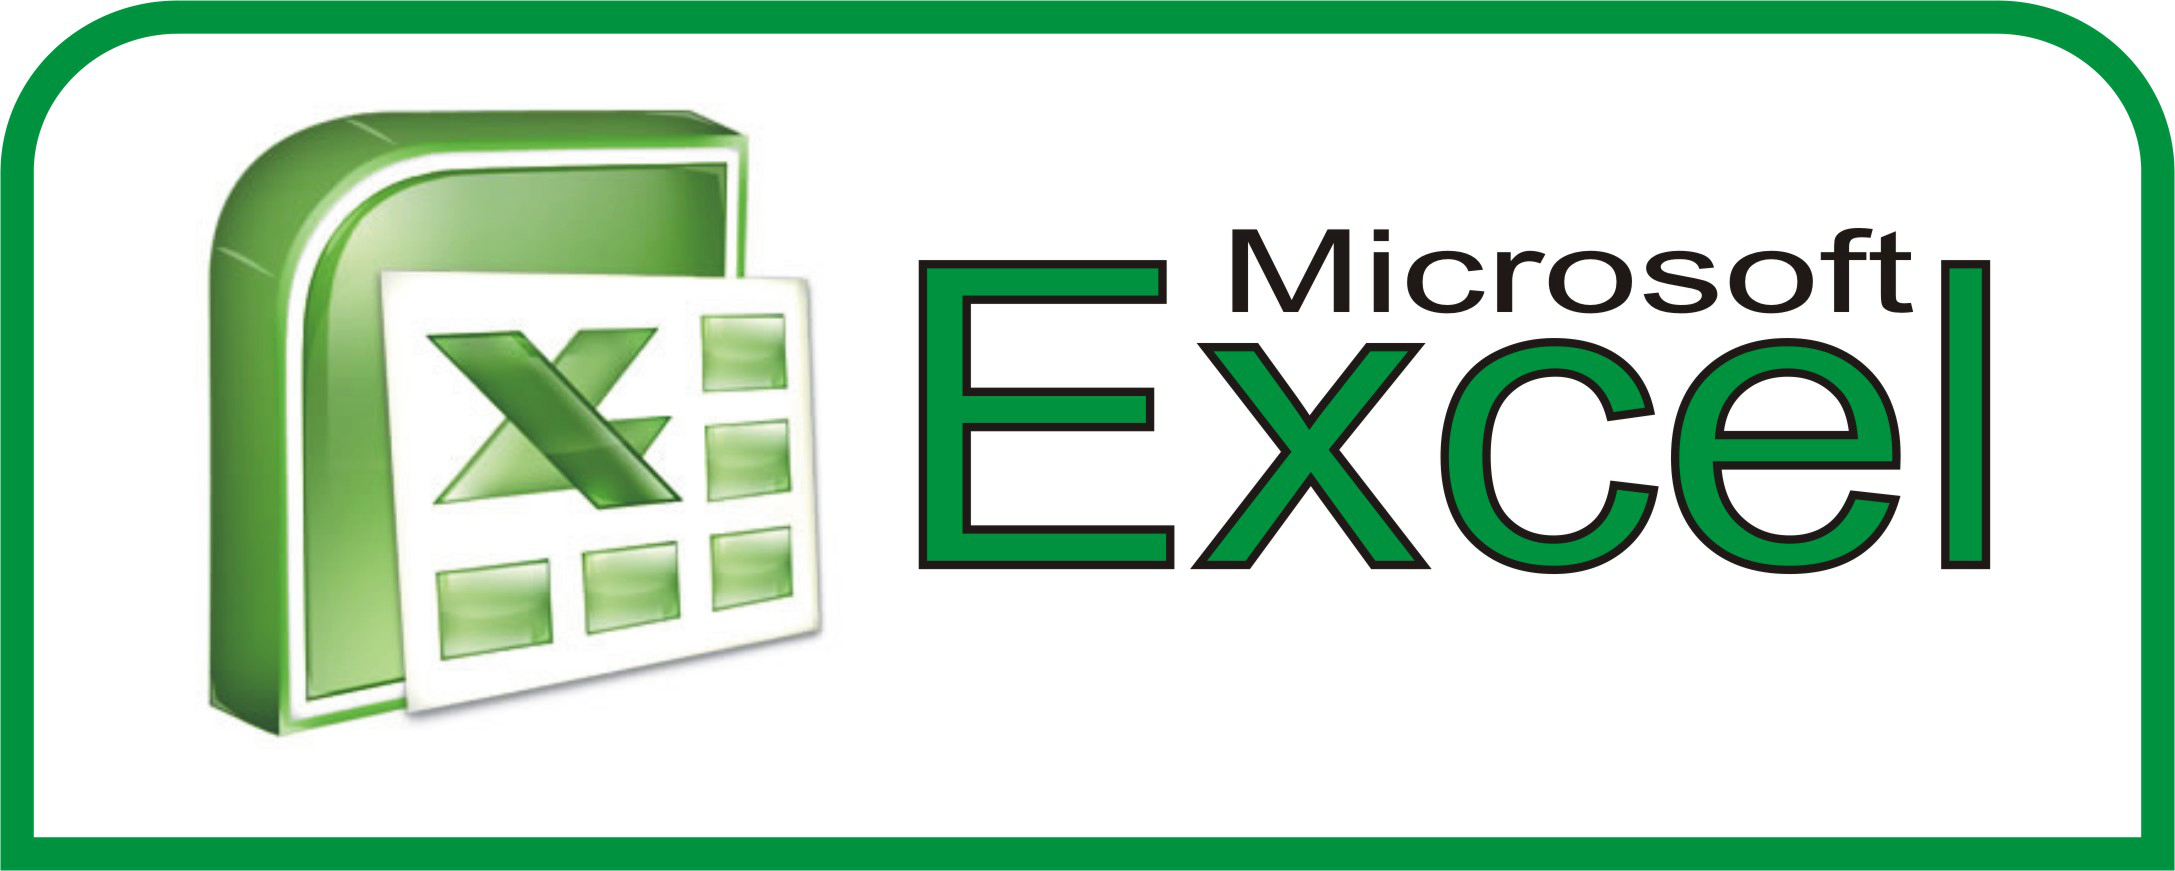 Ediblewildsus  Surprising  Excel Shortcuts You Probably Didnt Know About  Techdissected With Licious How To Use The Sum Function In Excel Besides Excel Keep Top Row Furthermore Highlight Duplicate Rows In Excel With Attractive Lock Column In Excel Also Fuzzy Lookup In Excel In Addition Excel Iferror Function And Excel Duplicate Formula As Well As Copy A Formula In Excel Additionally Database Excel From Techdissectedcom With Ediblewildsus  Licious  Excel Shortcuts You Probably Didnt Know About  Techdissected With Attractive How To Use The Sum Function In Excel Besides Excel Keep Top Row Furthermore Highlight Duplicate Rows In Excel And Surprising Lock Column In Excel Also Fuzzy Lookup In Excel In Addition Excel Iferror Function From Techdissectedcom